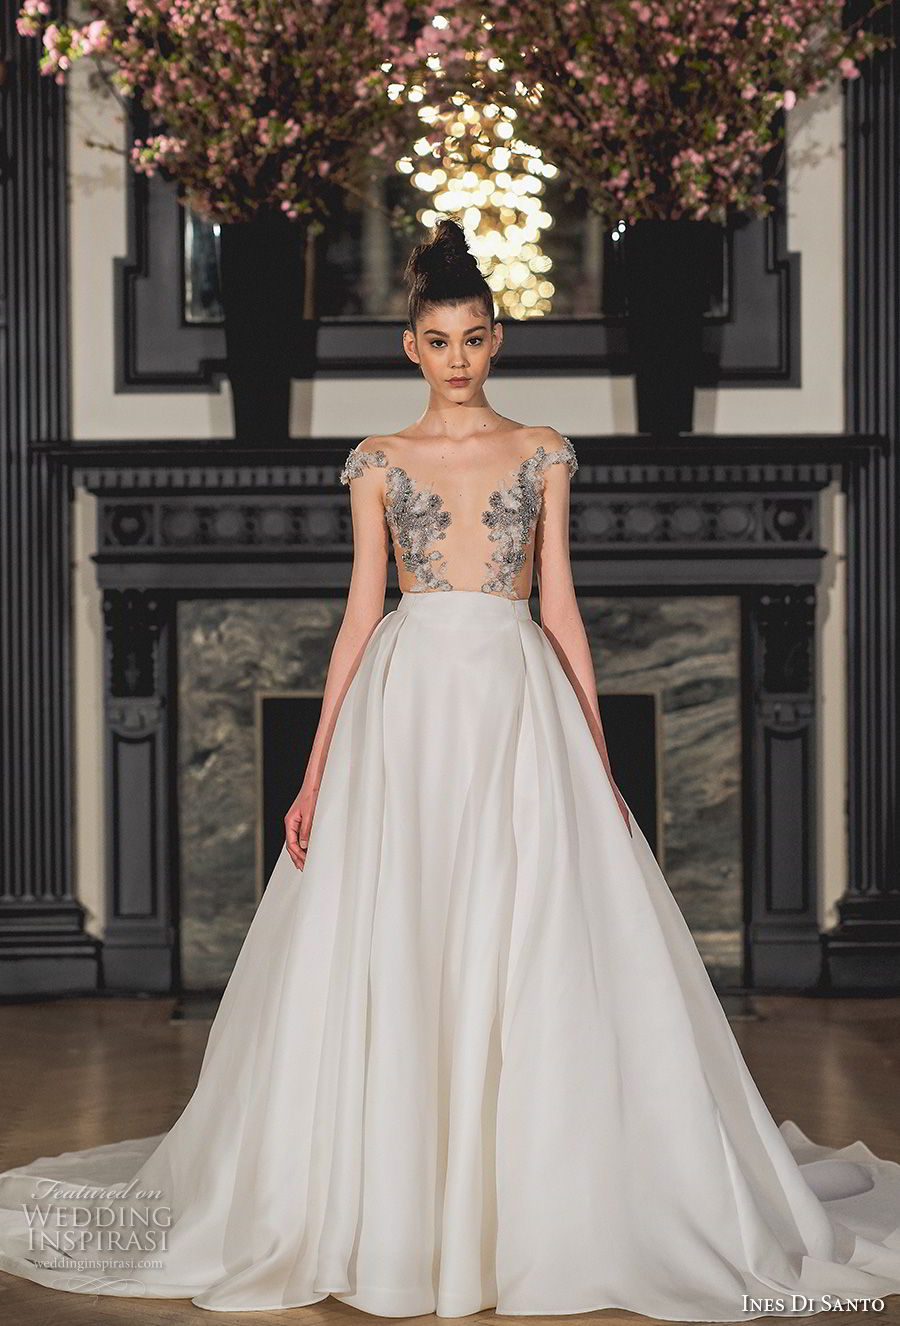 ines di santo spring 2019 bridal cap sleeves illusion jewel deep plunging v neck heavily embellished bodice glamorous a line wedding dress chapel train (14) mv